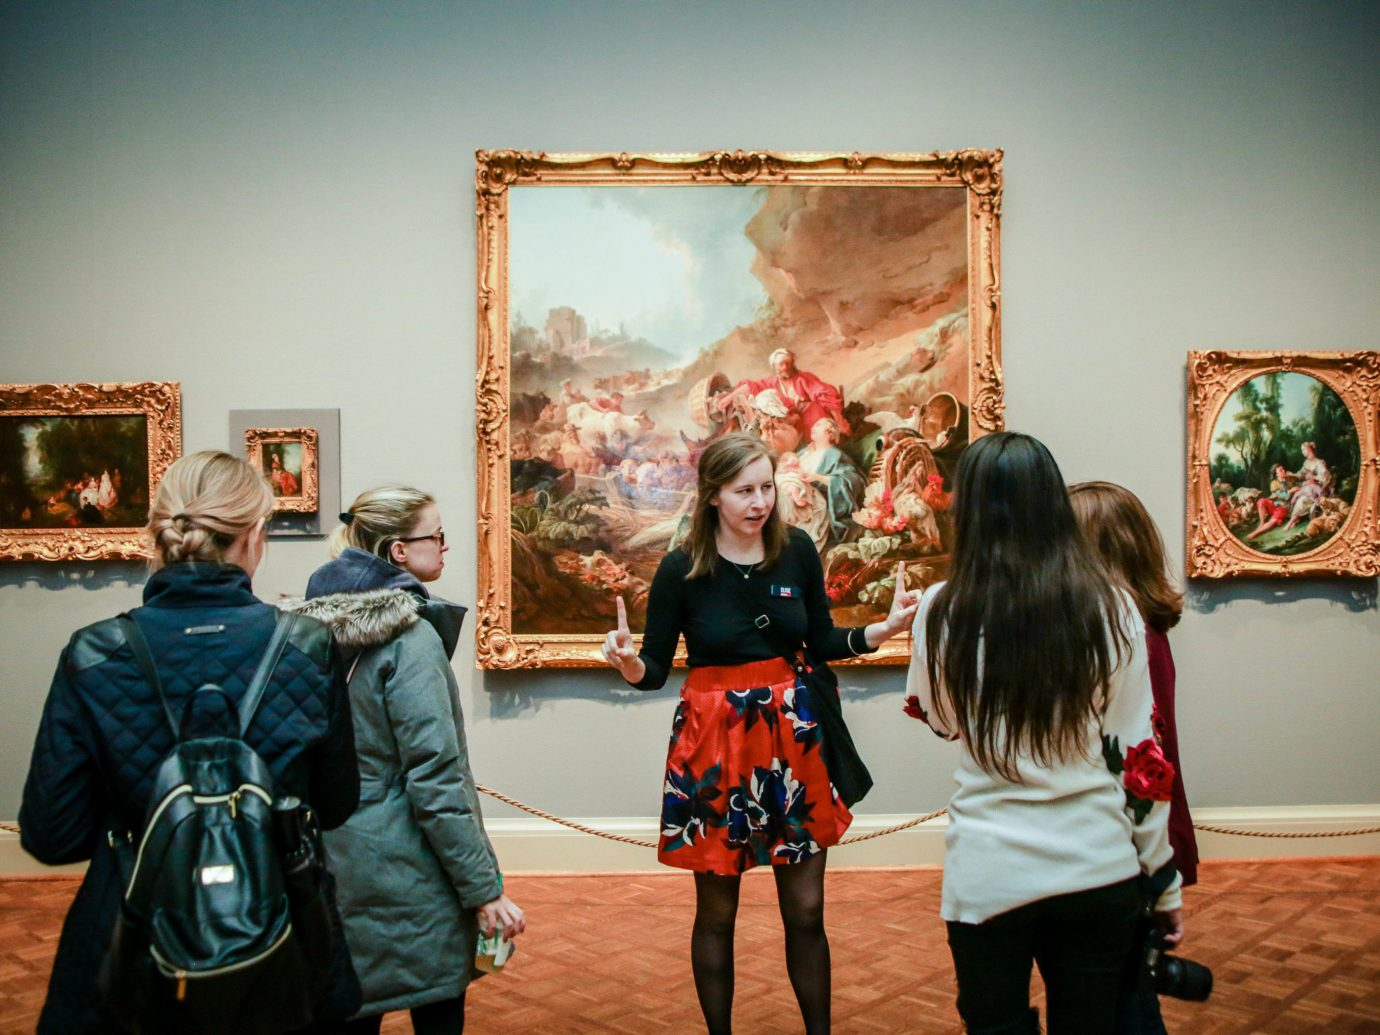 Trip Ideas person indoor room scene tourist attraction gallery art art gallery exhibition painting museum fun event Family